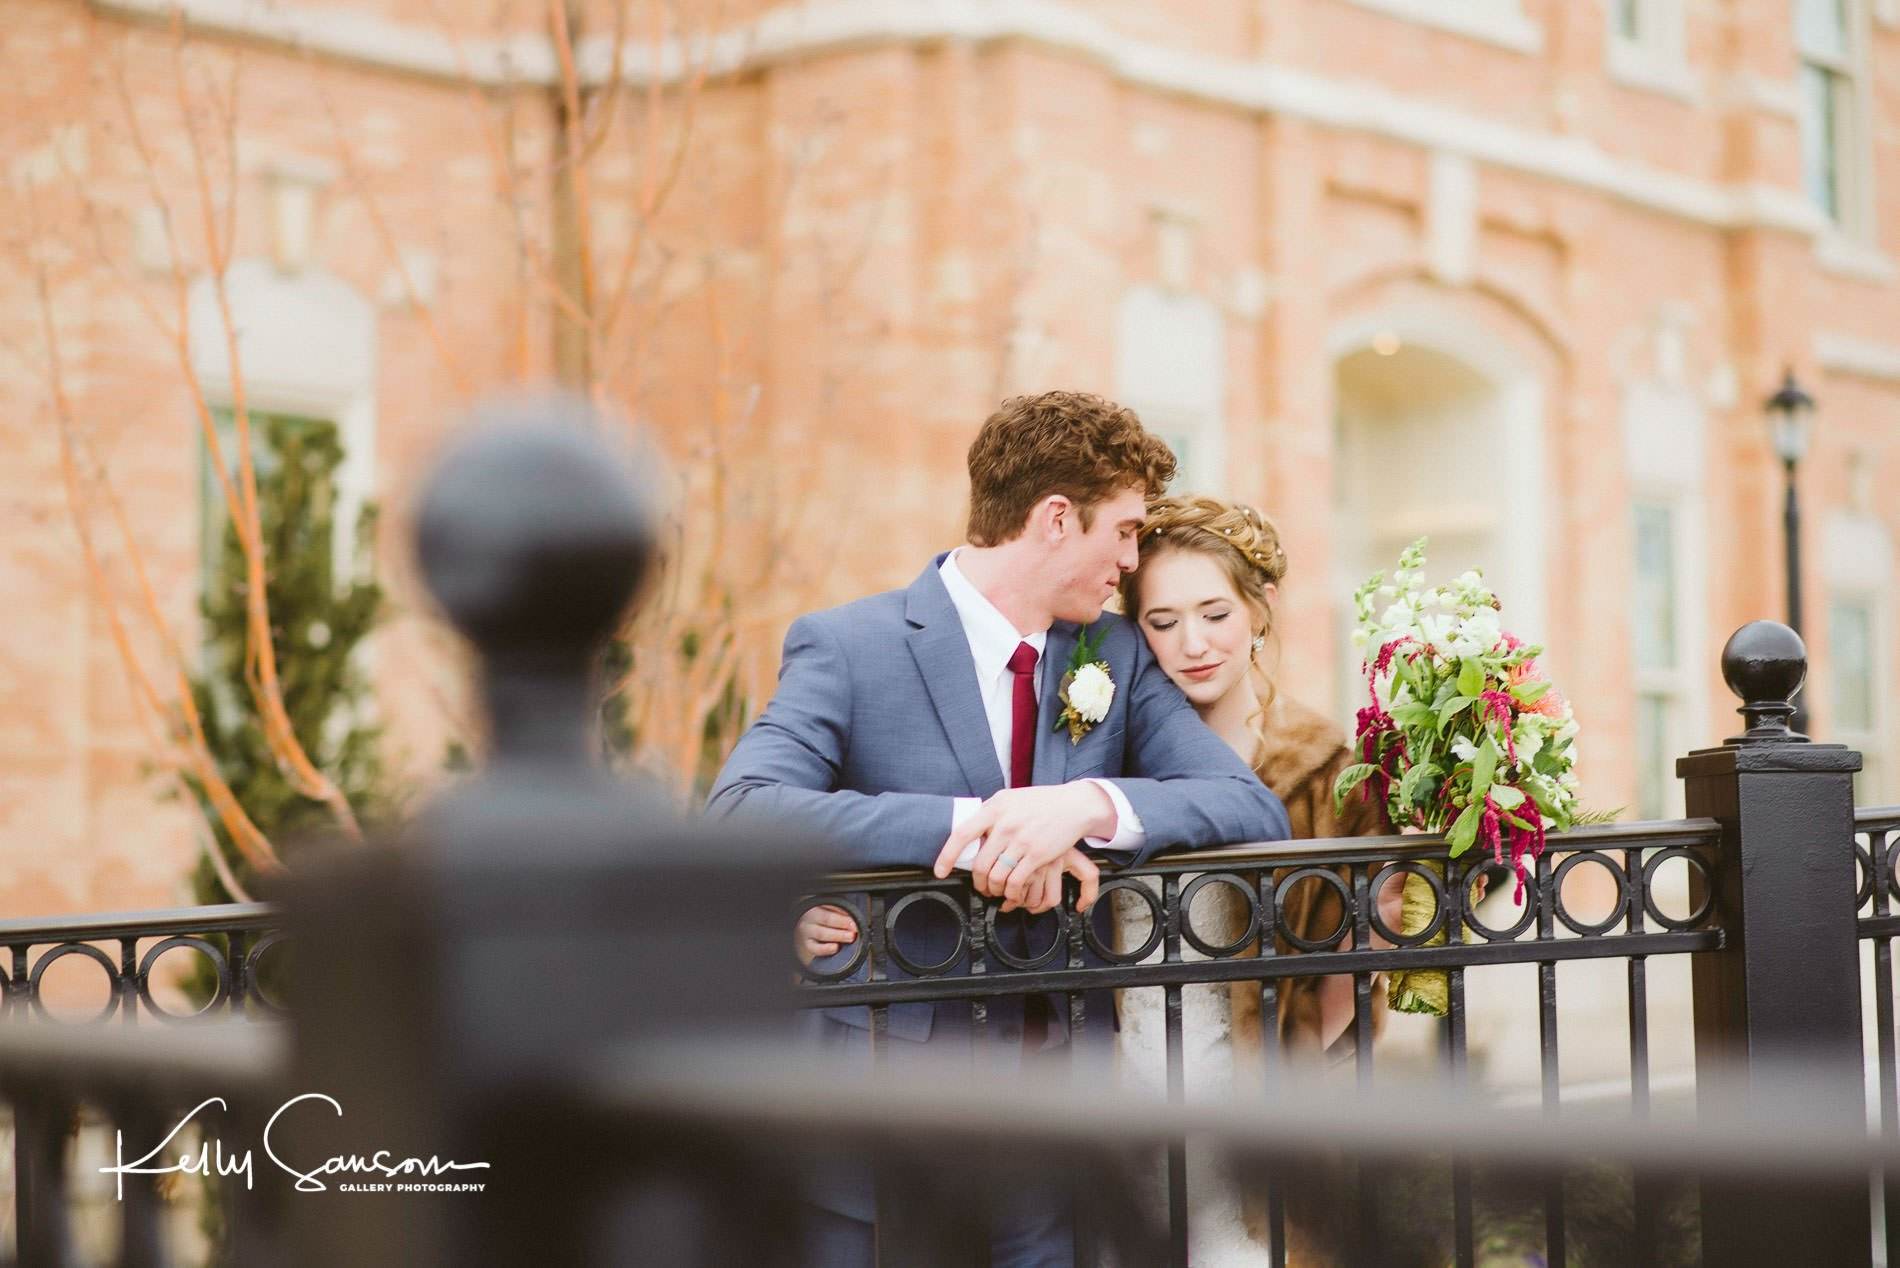 Groom looking at bride while leaning on railing for wedding photography at the provo city center lds temple.